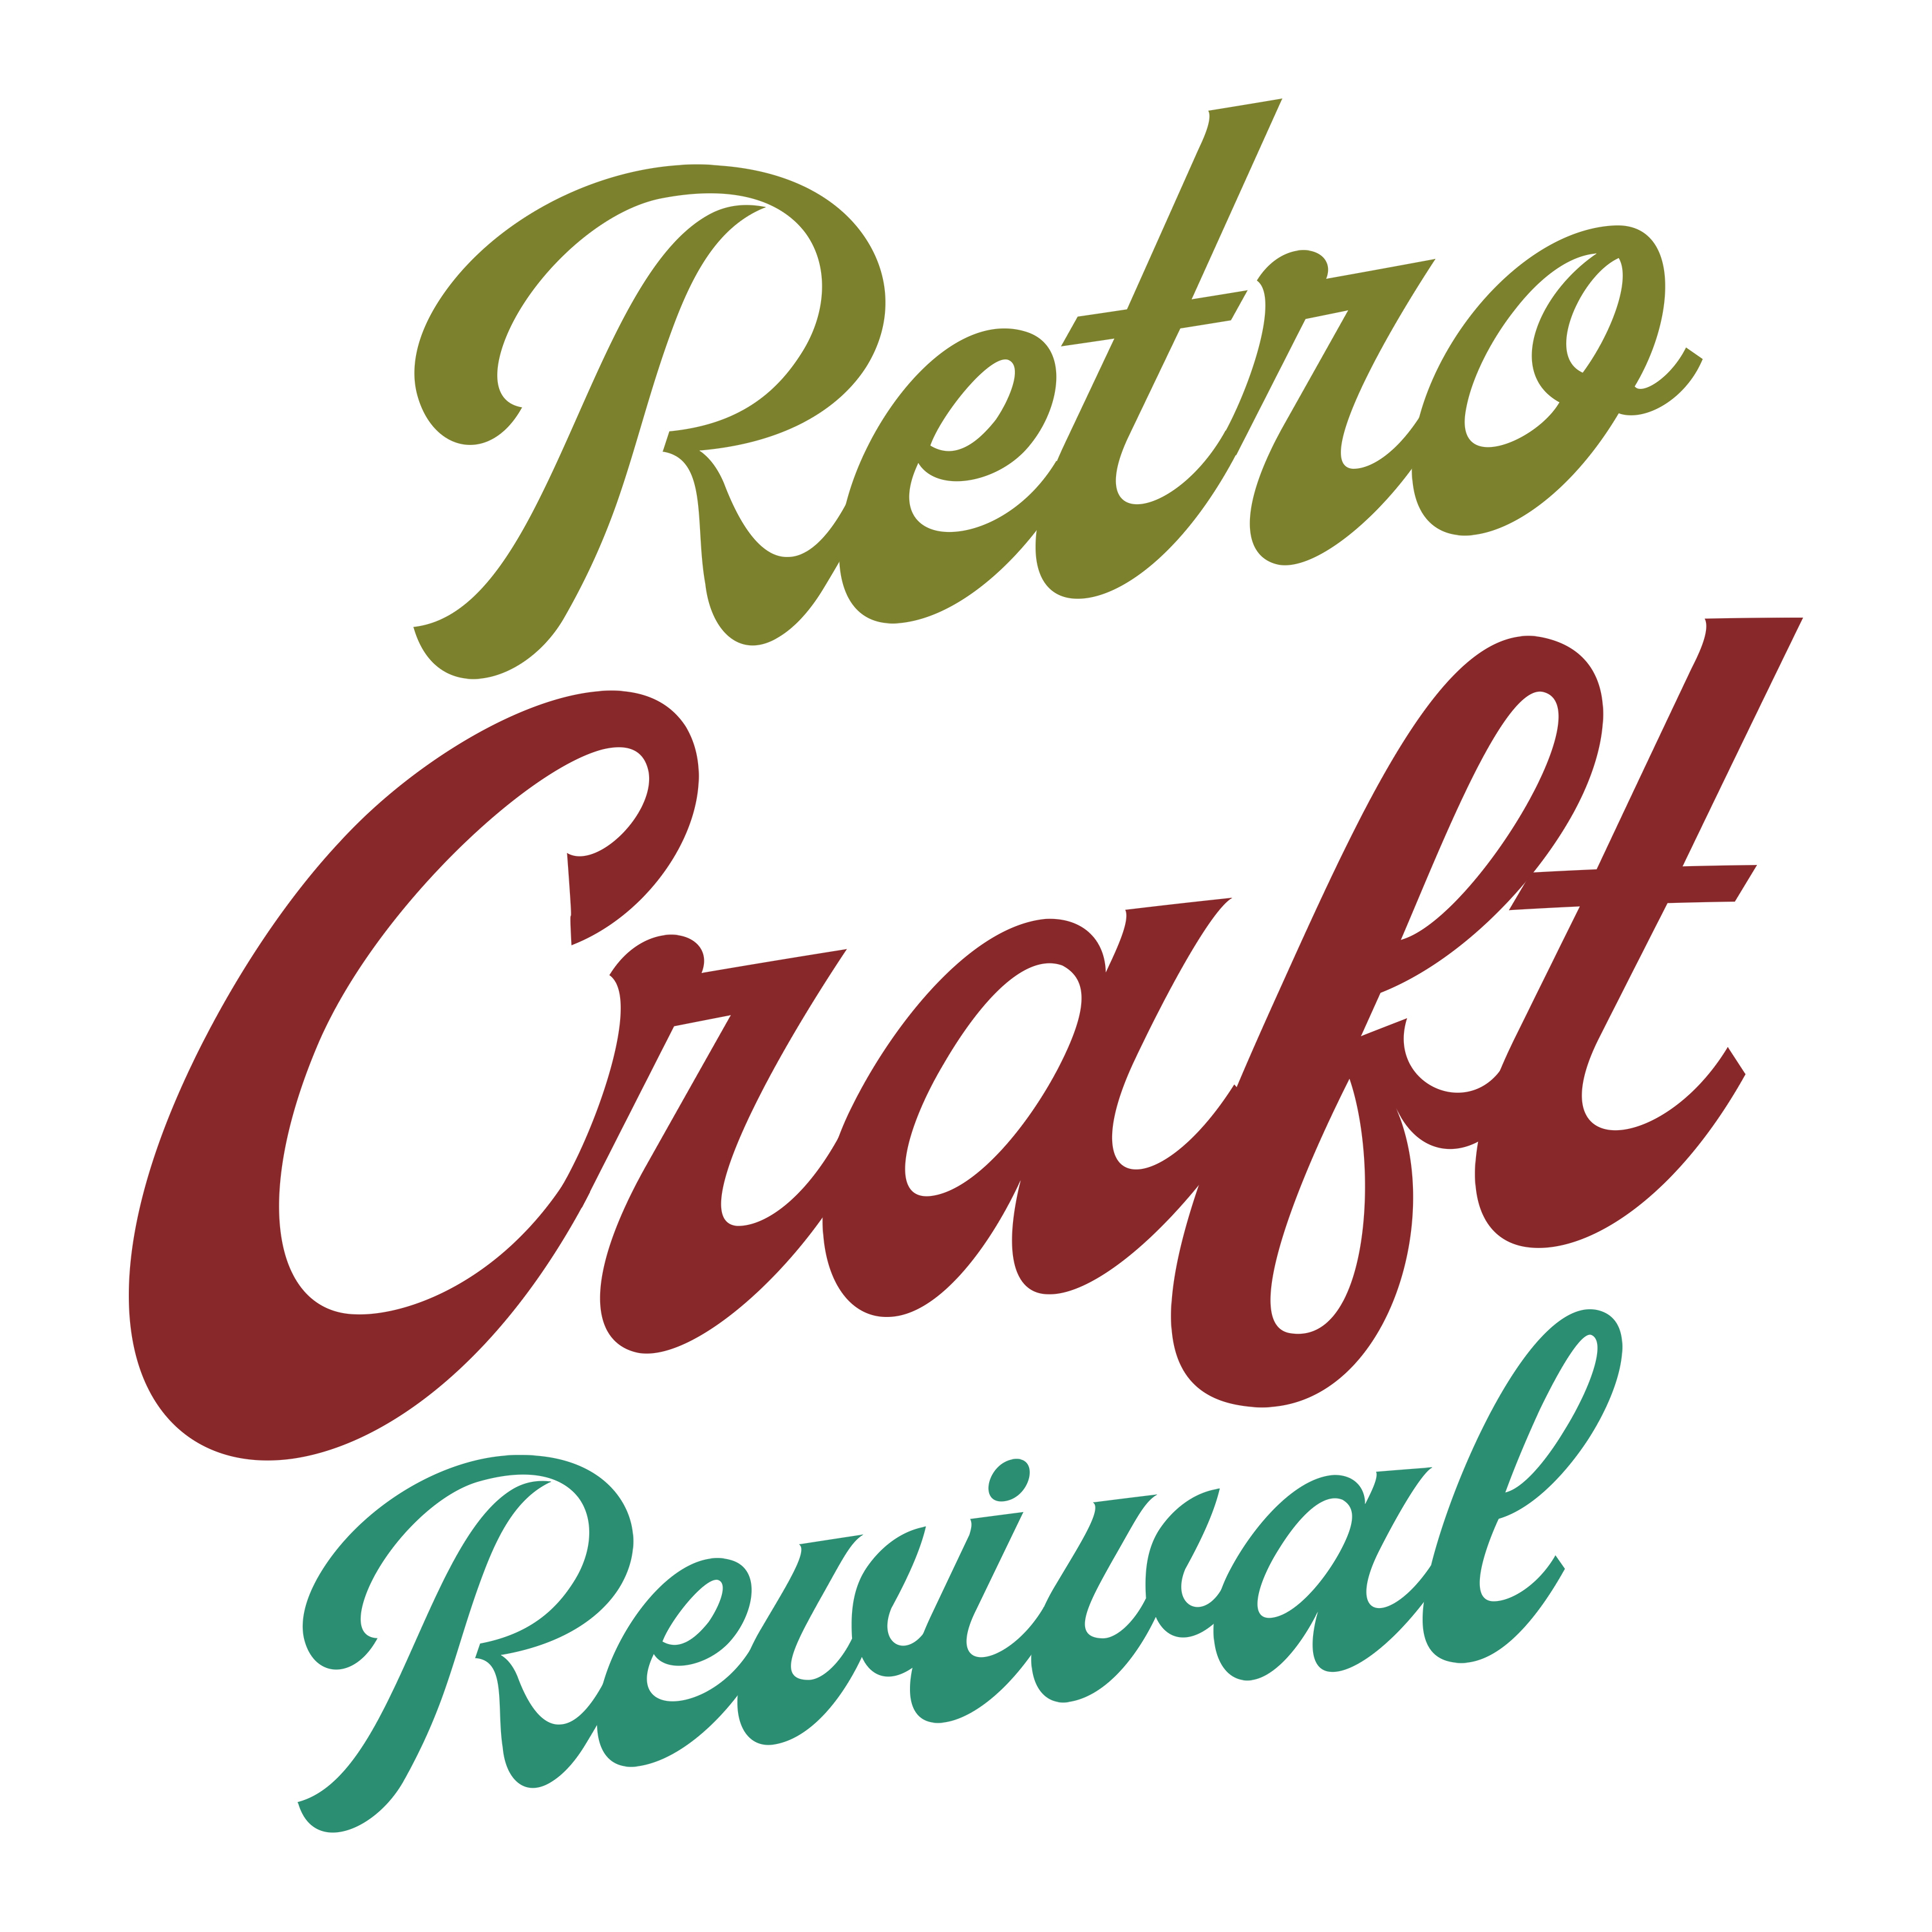 Retre Craft Revival